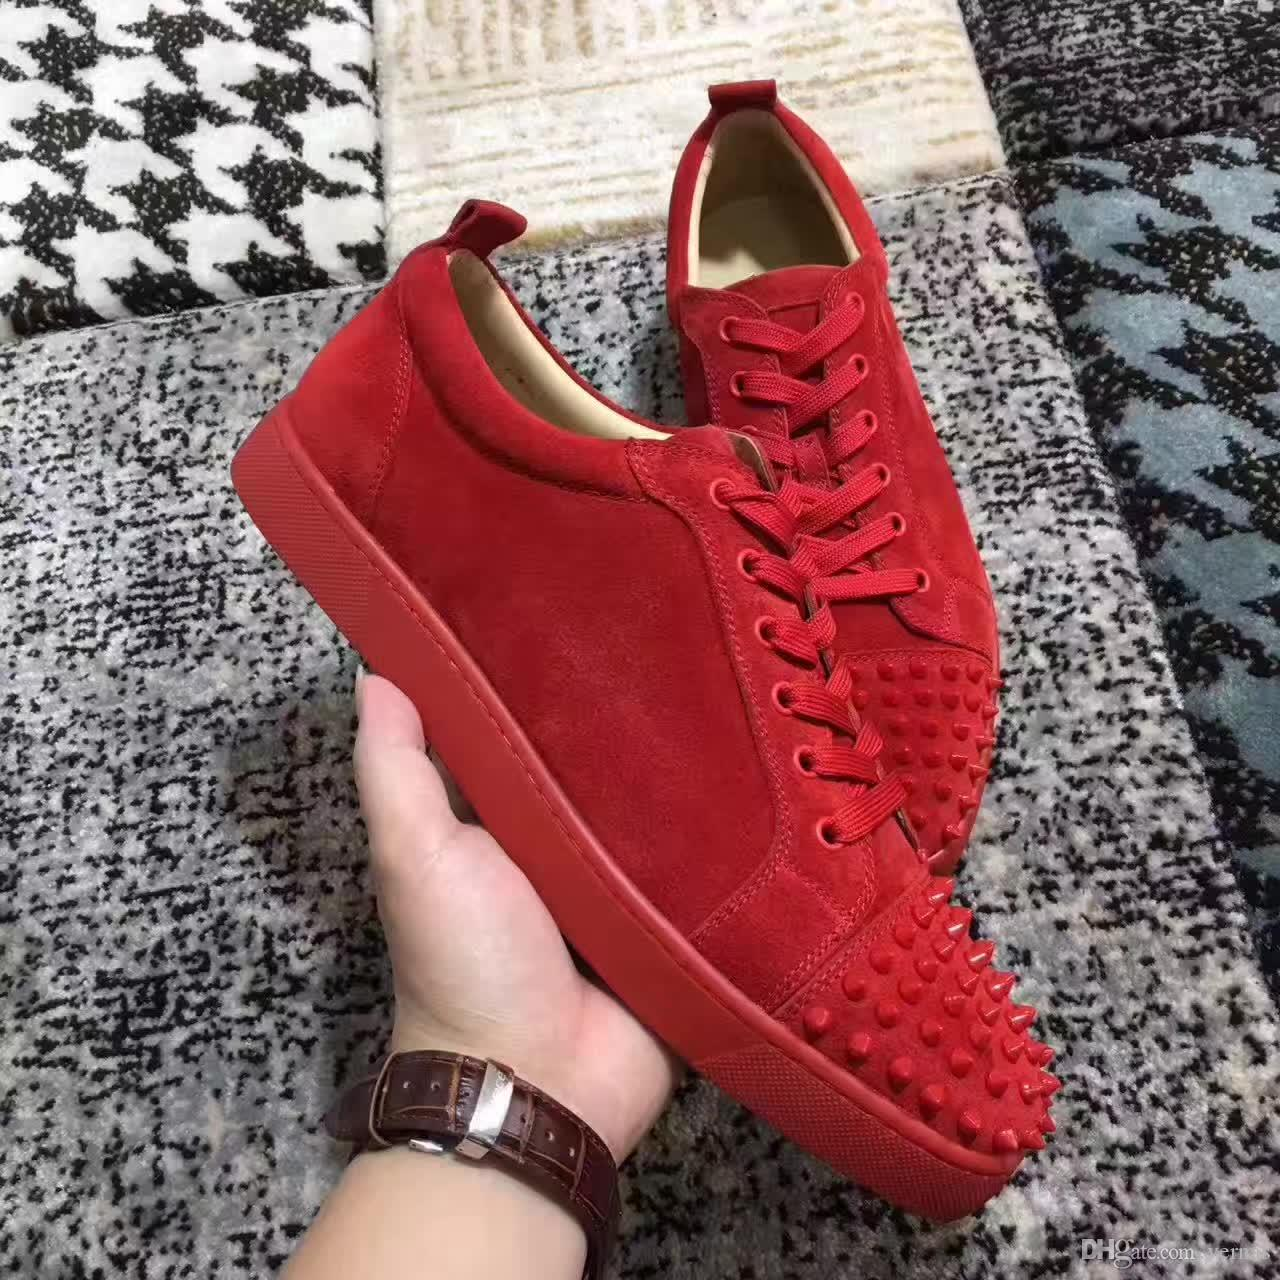 Fashion Red Bottom Sneakers Shoes Women 8ec3c1ec4f